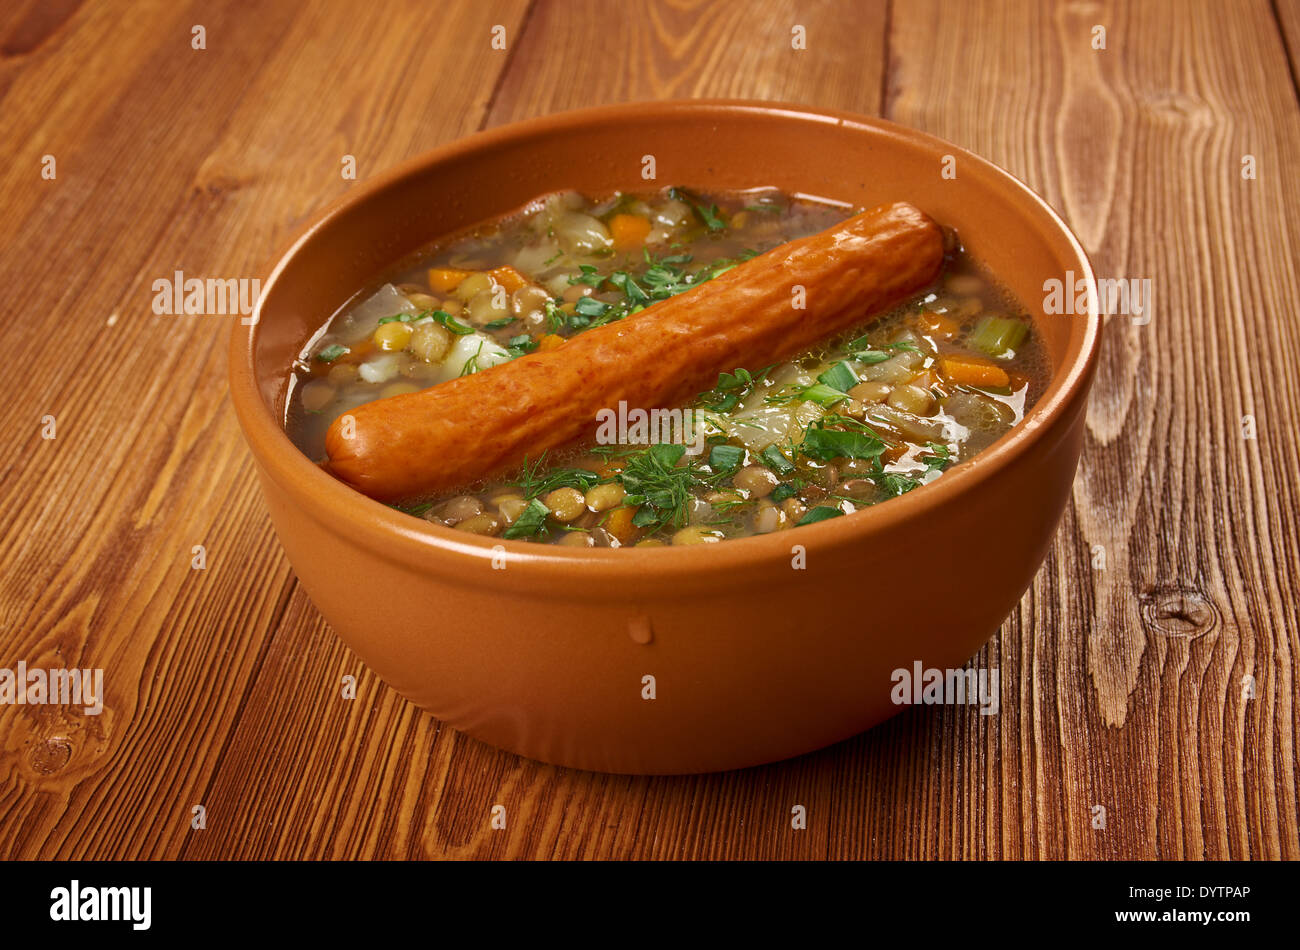 Frankfurter Linsensuppe -German Lentil Soup with sausage.farmhouse kitchen Stock Photo